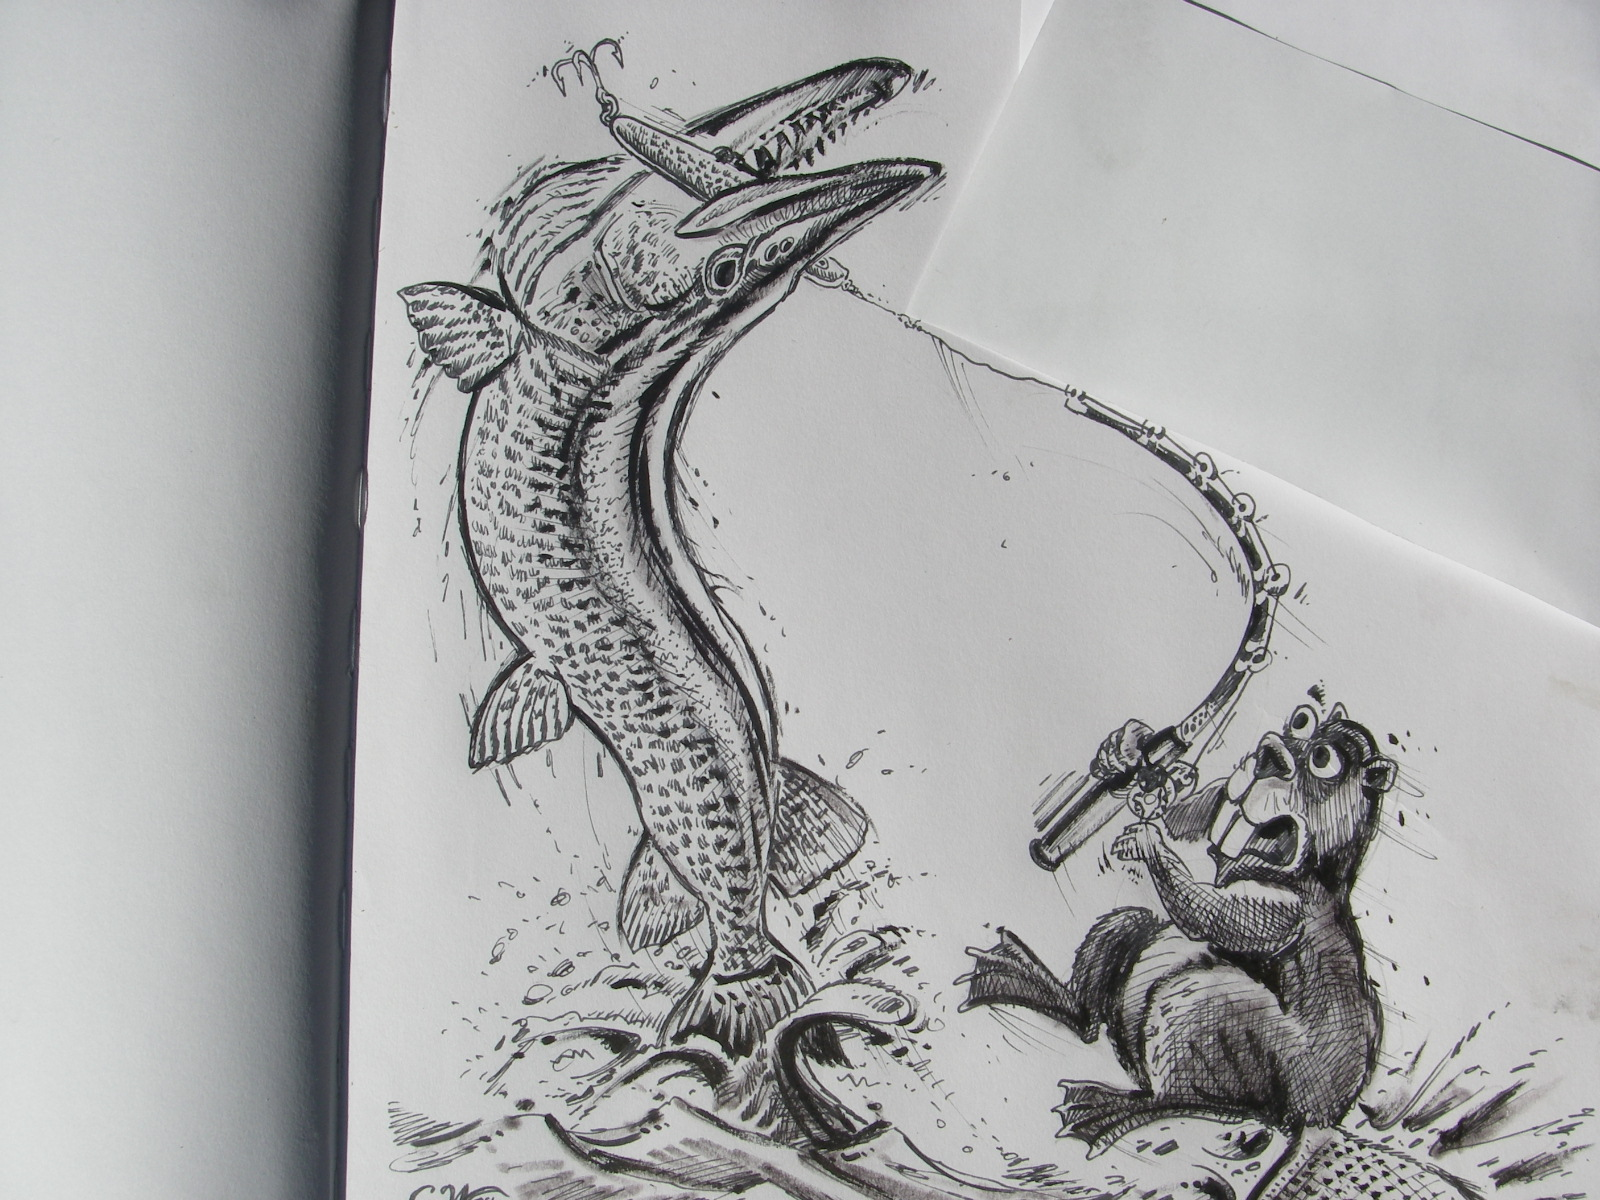 Musky Fish Drawing The muskies are waiting,